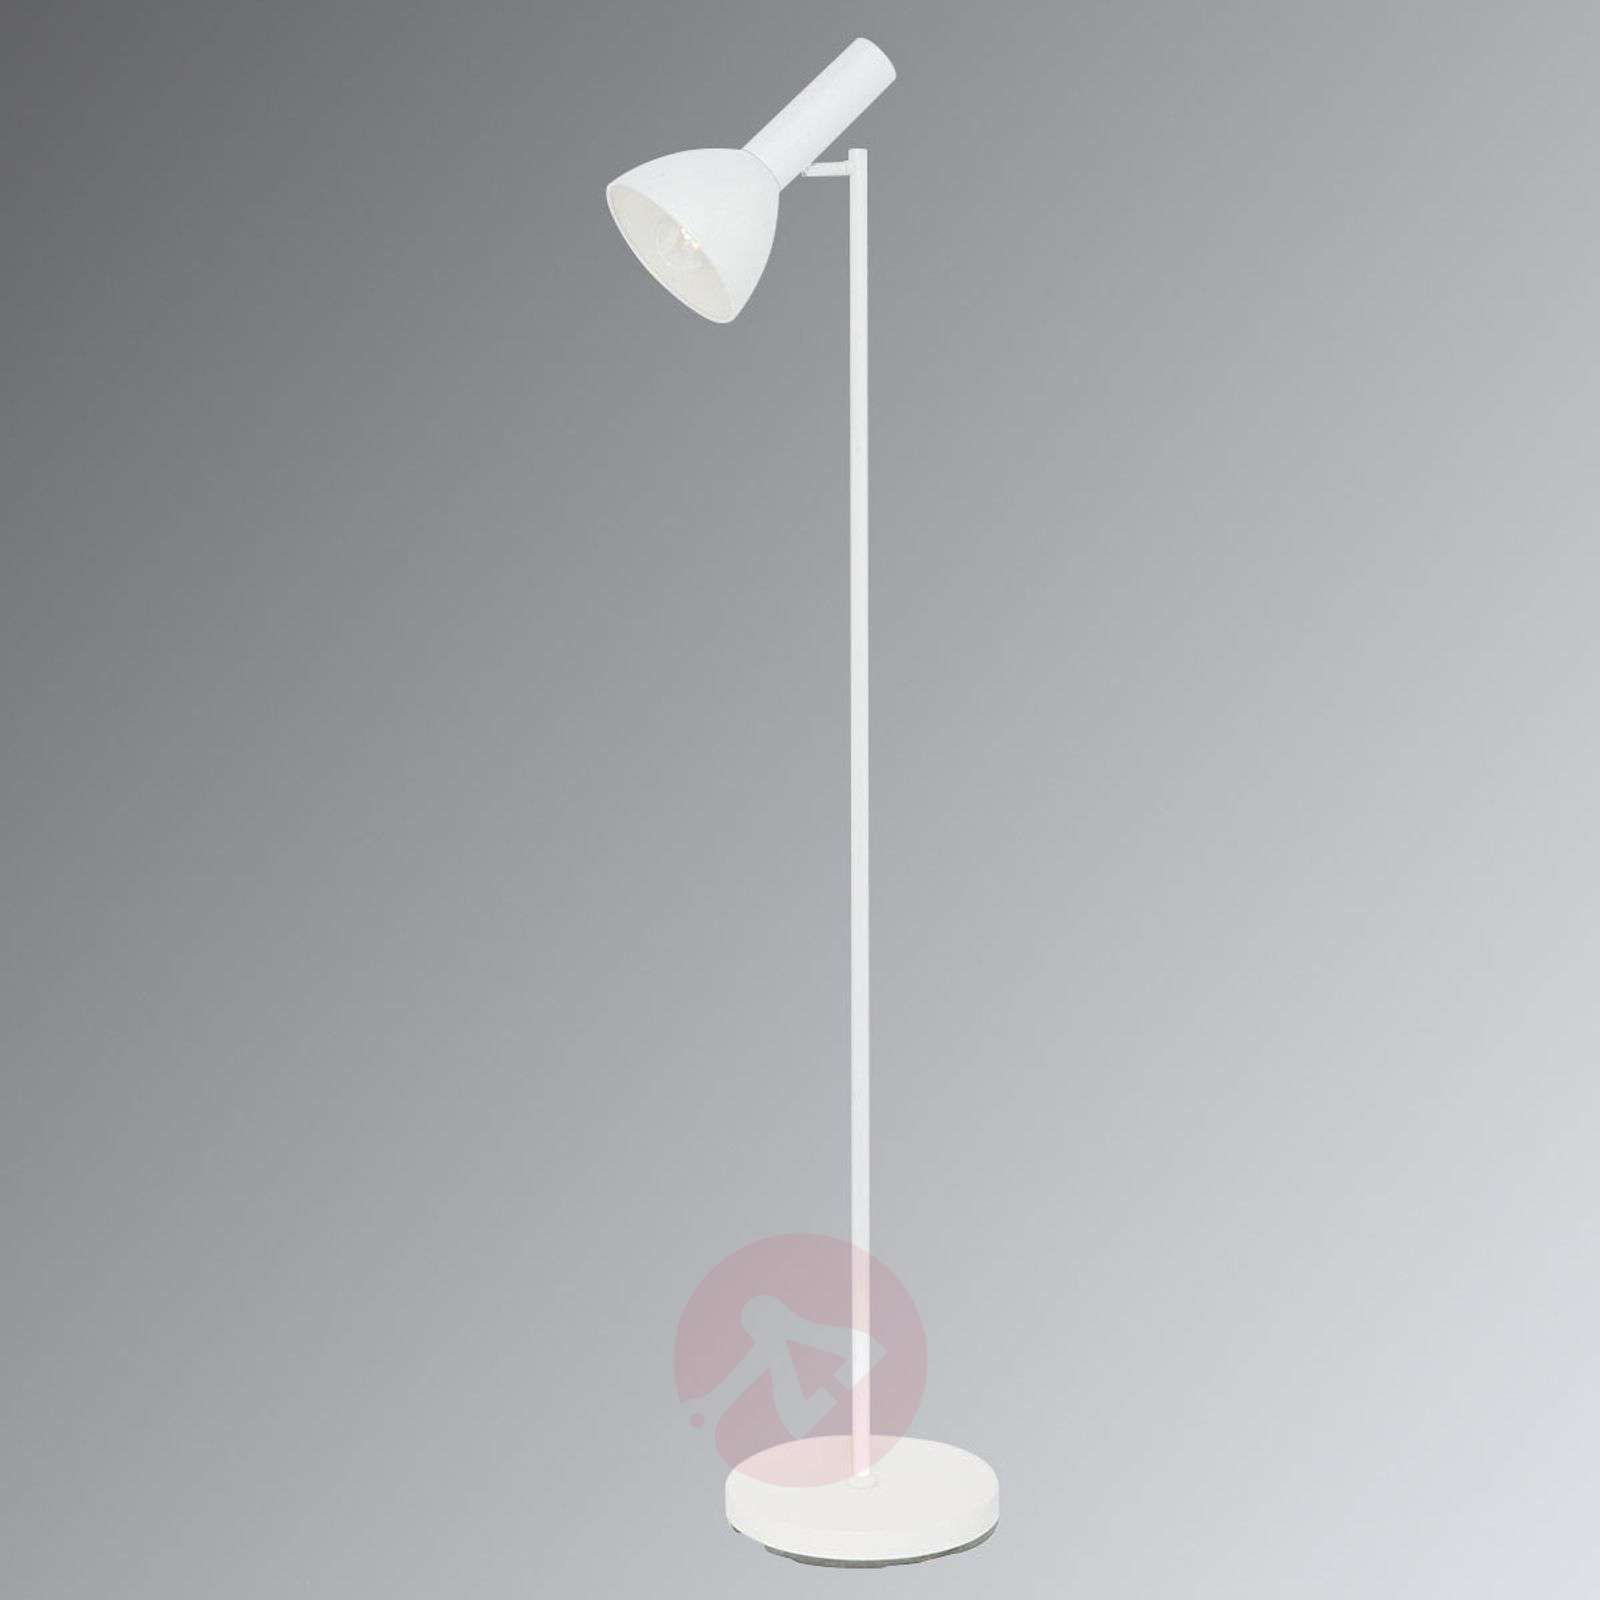 Gino moderne vloerlamp in wit lampen24.be